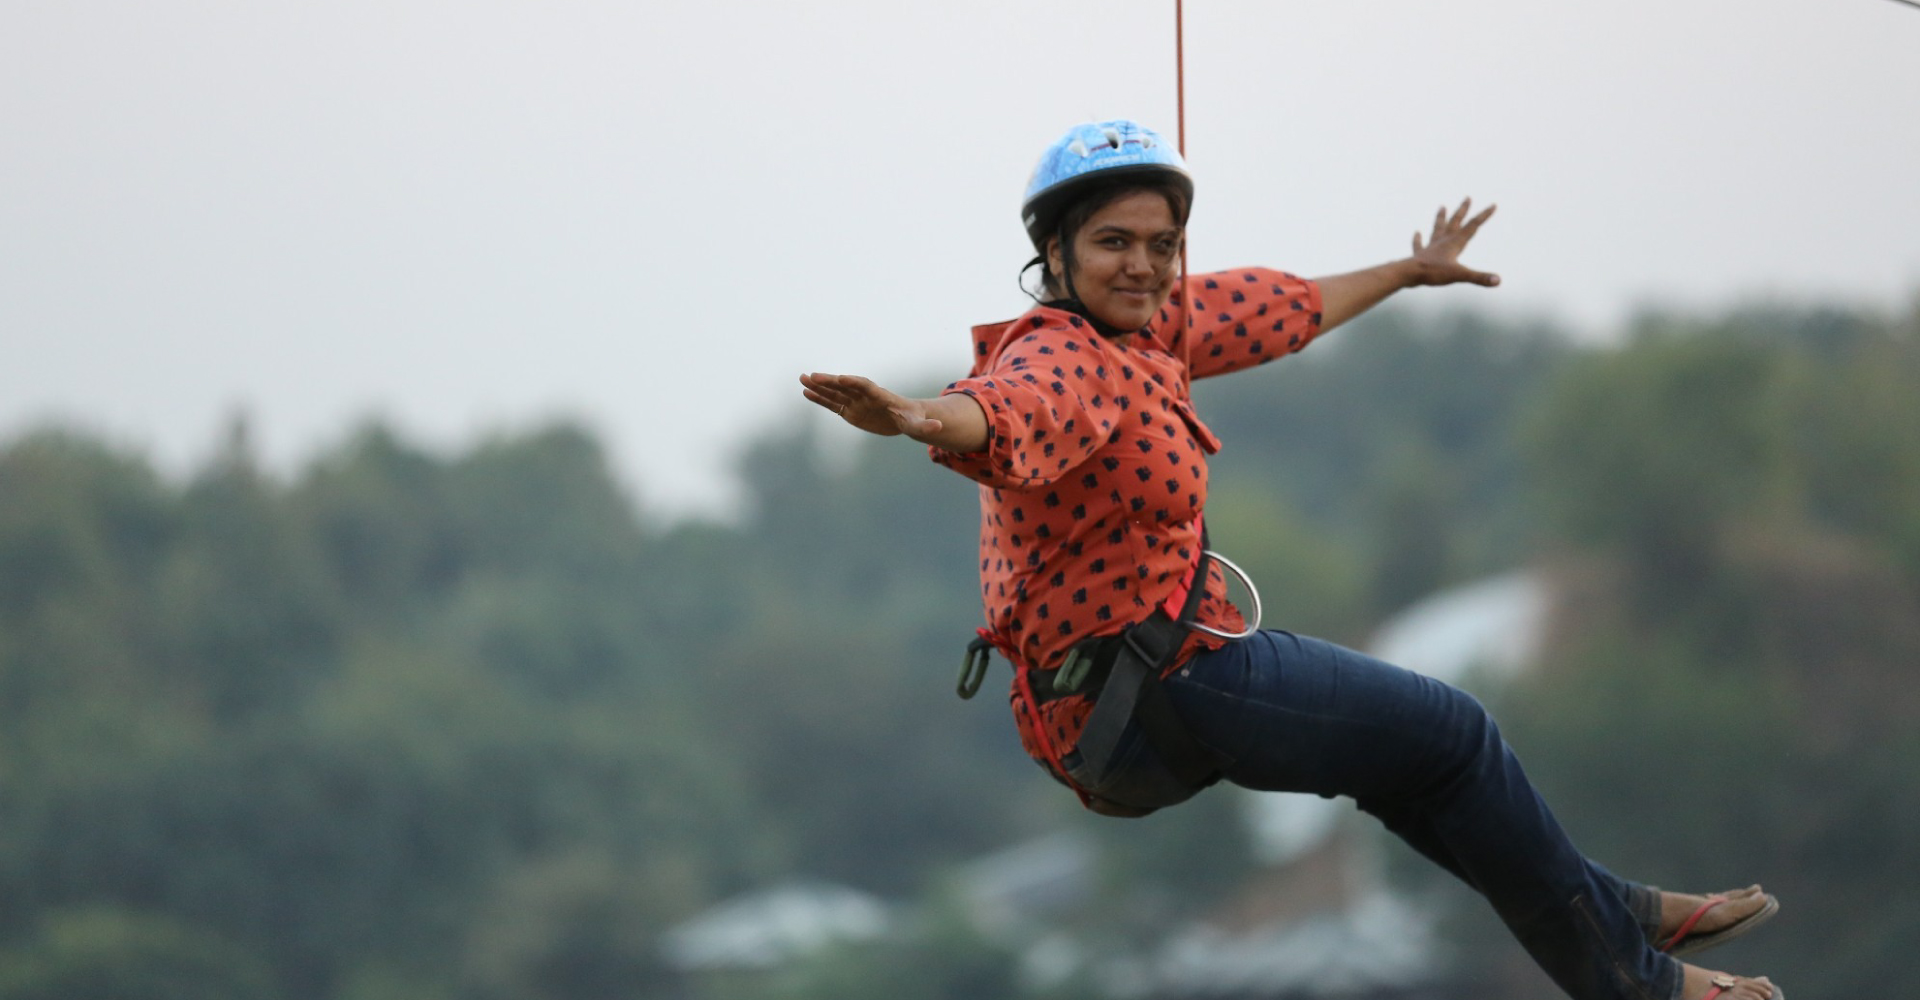 Zipline Setup In India